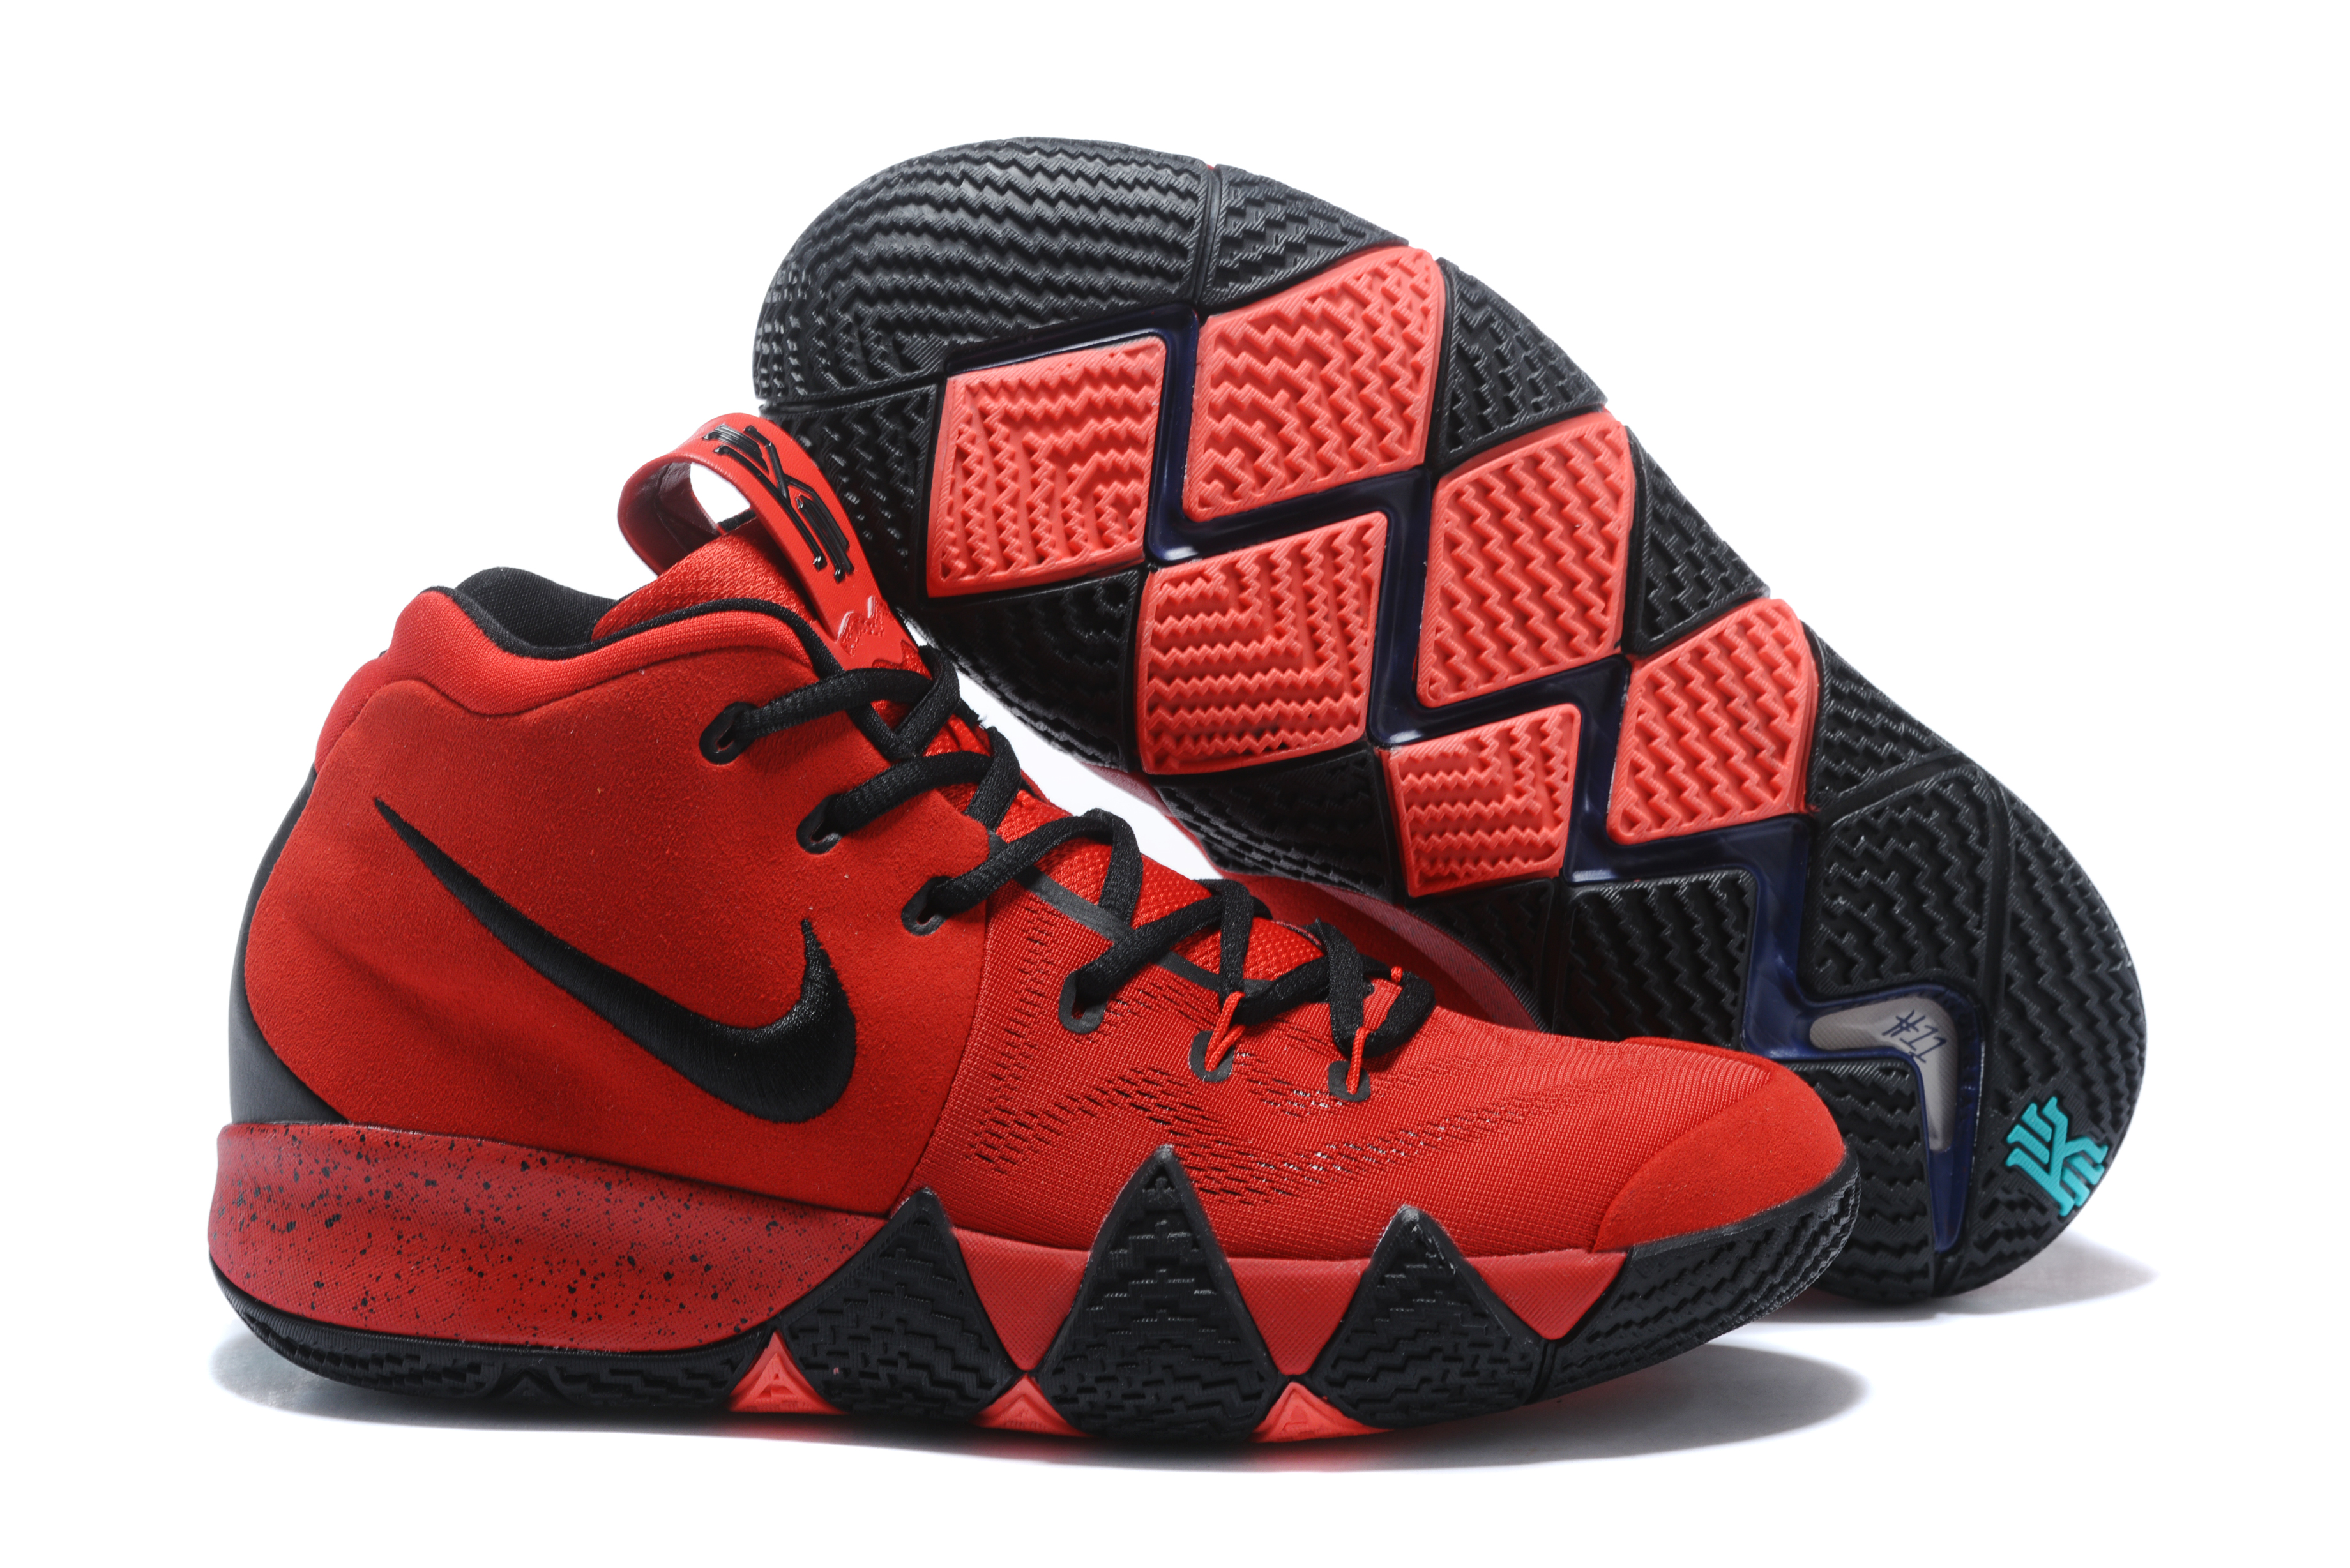 2017 Nike Kyrie 4 Red Black Basketball Shoes